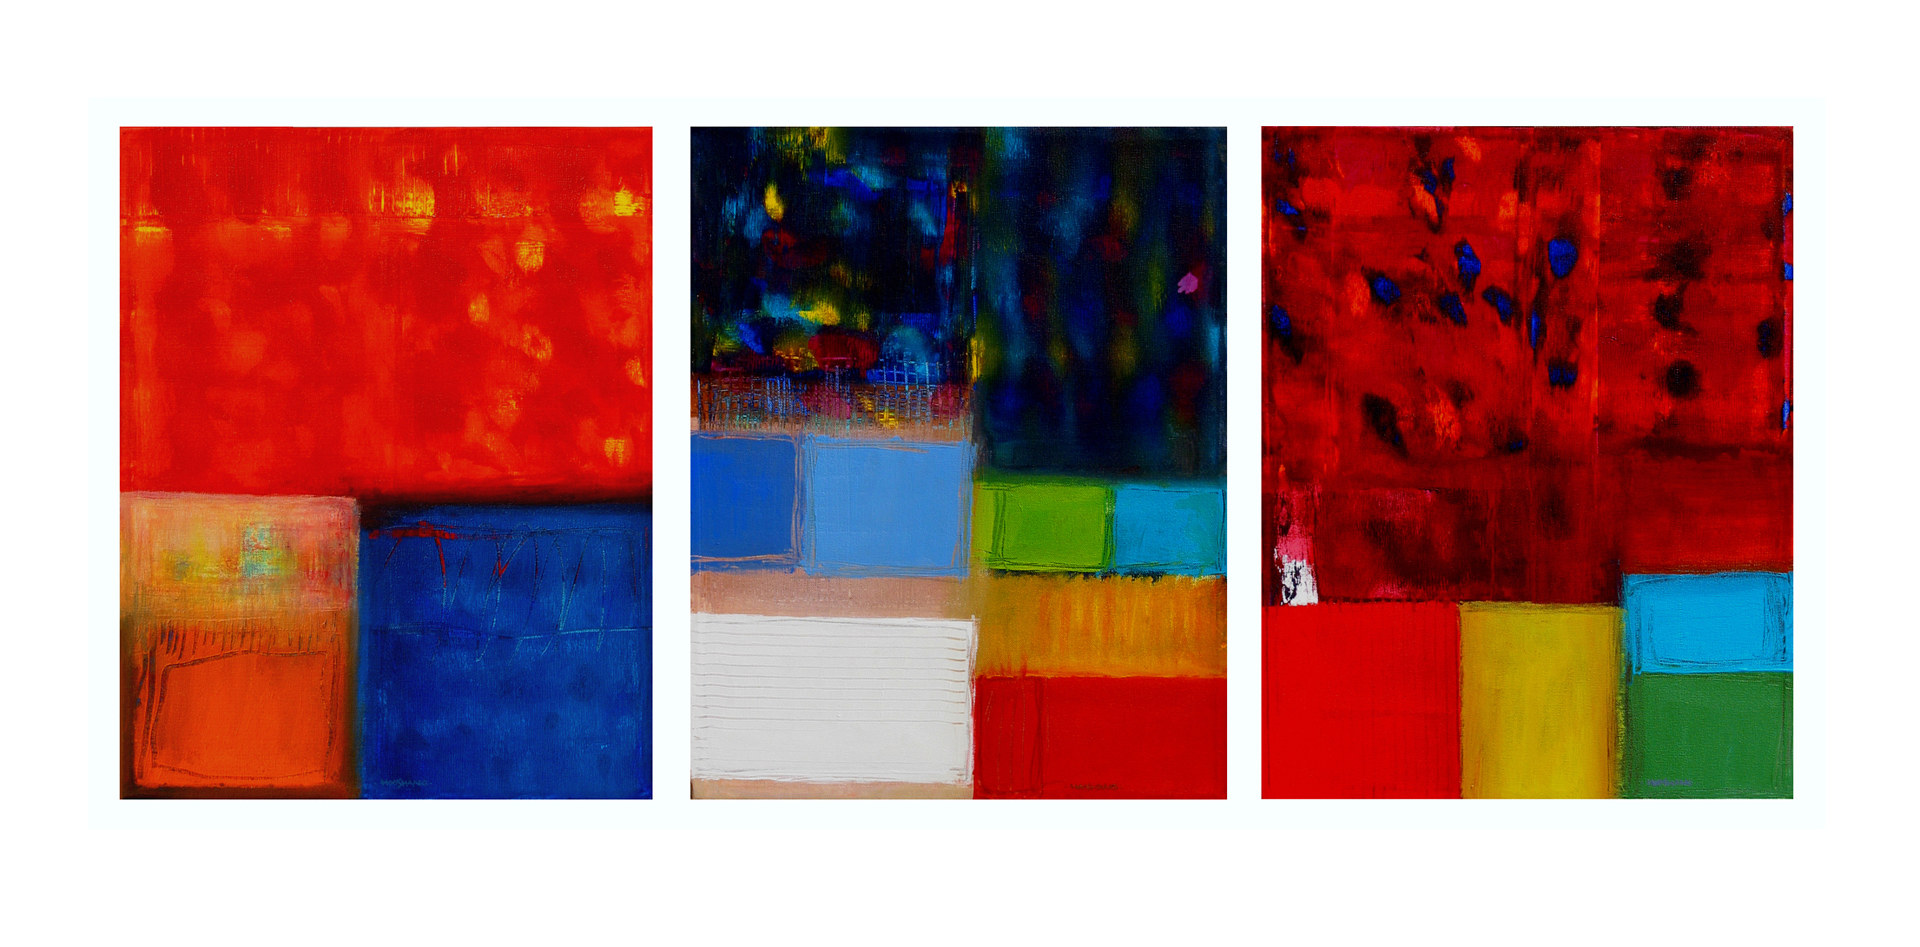 Acrylic painting Color Studies, 16x20 inches each by Hooshang Khorasani